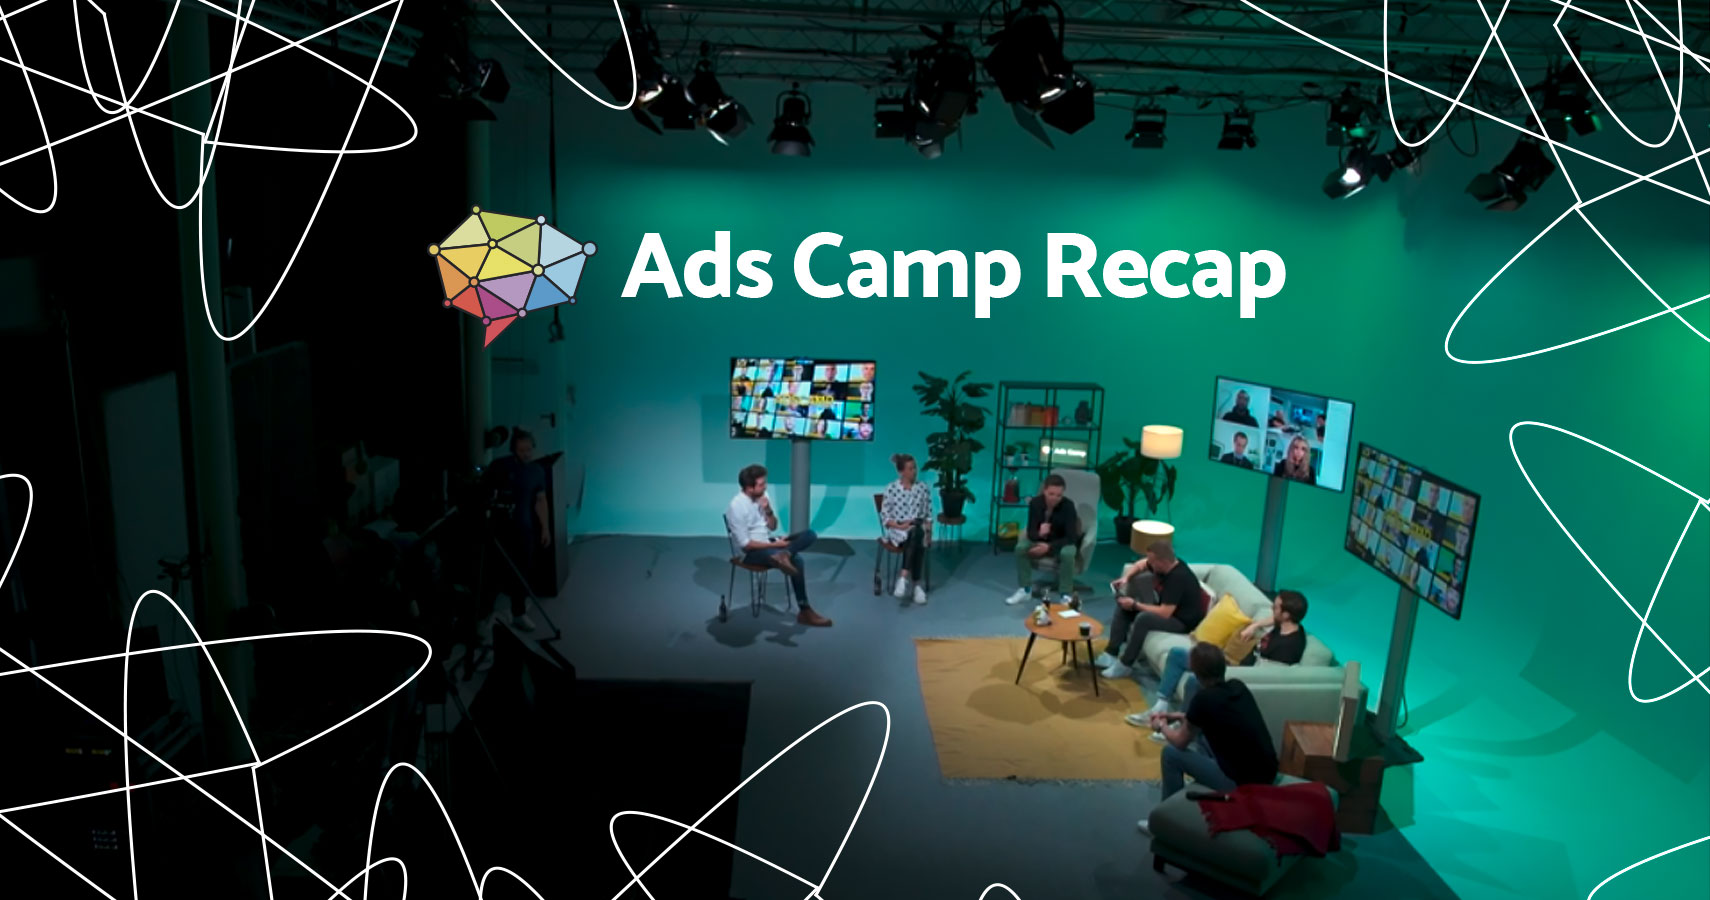 adseed - Ads Camp Recap 2020